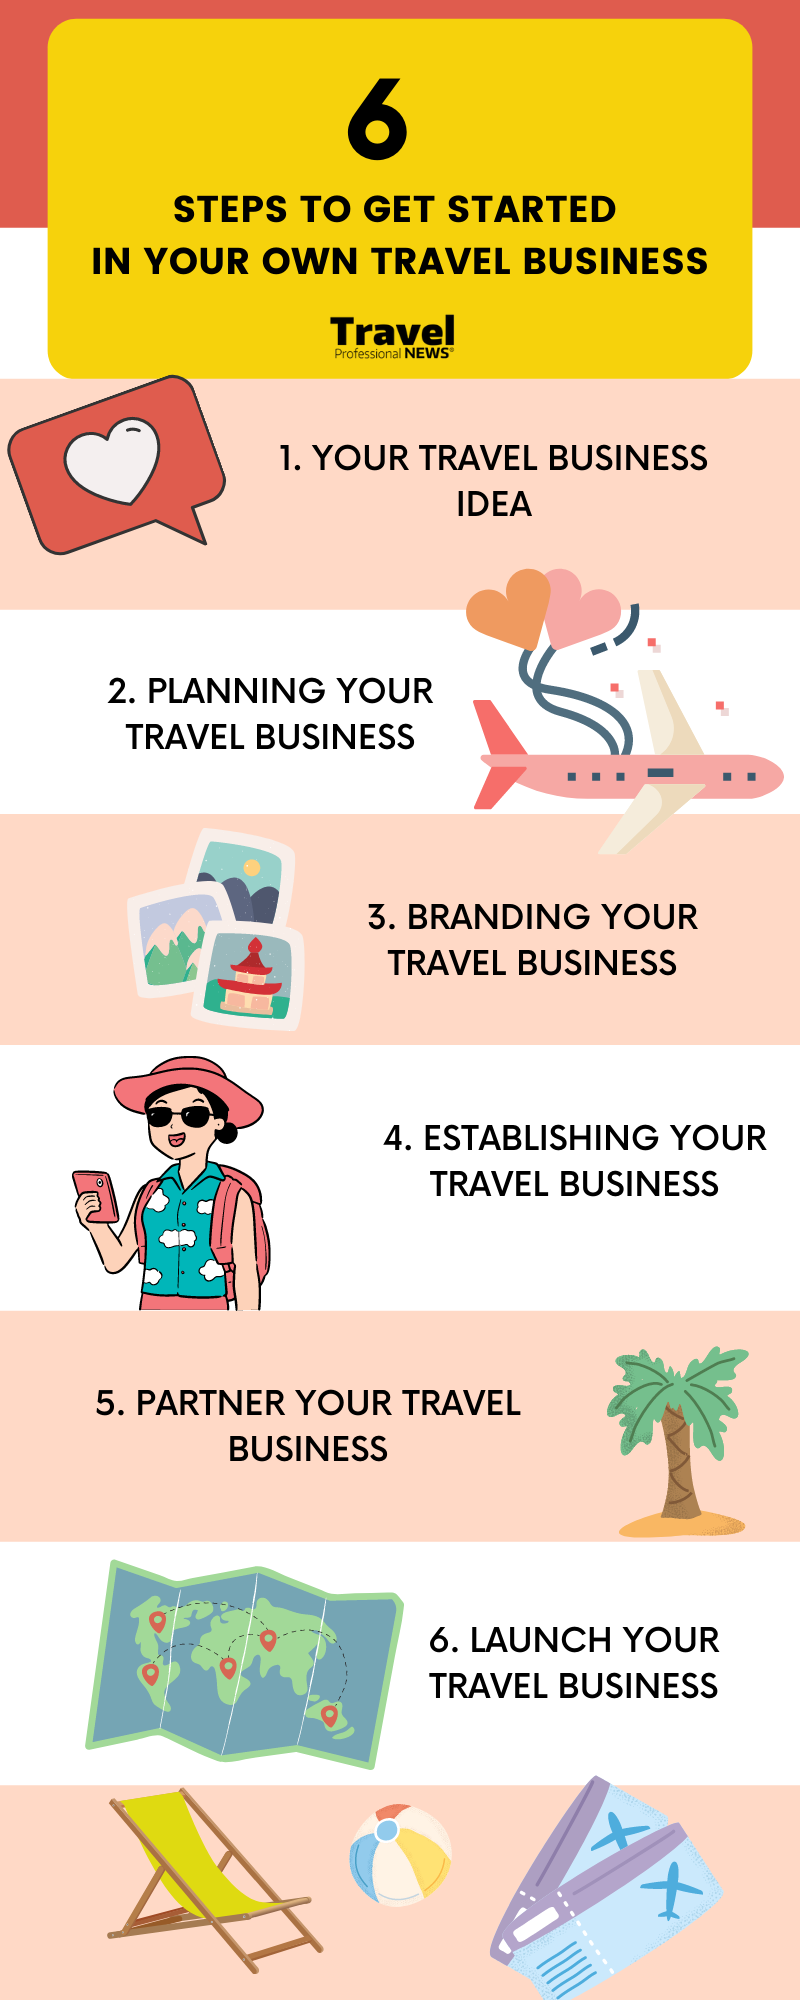 Starting Career as Travel Professional 2021 | Get in 6 steps